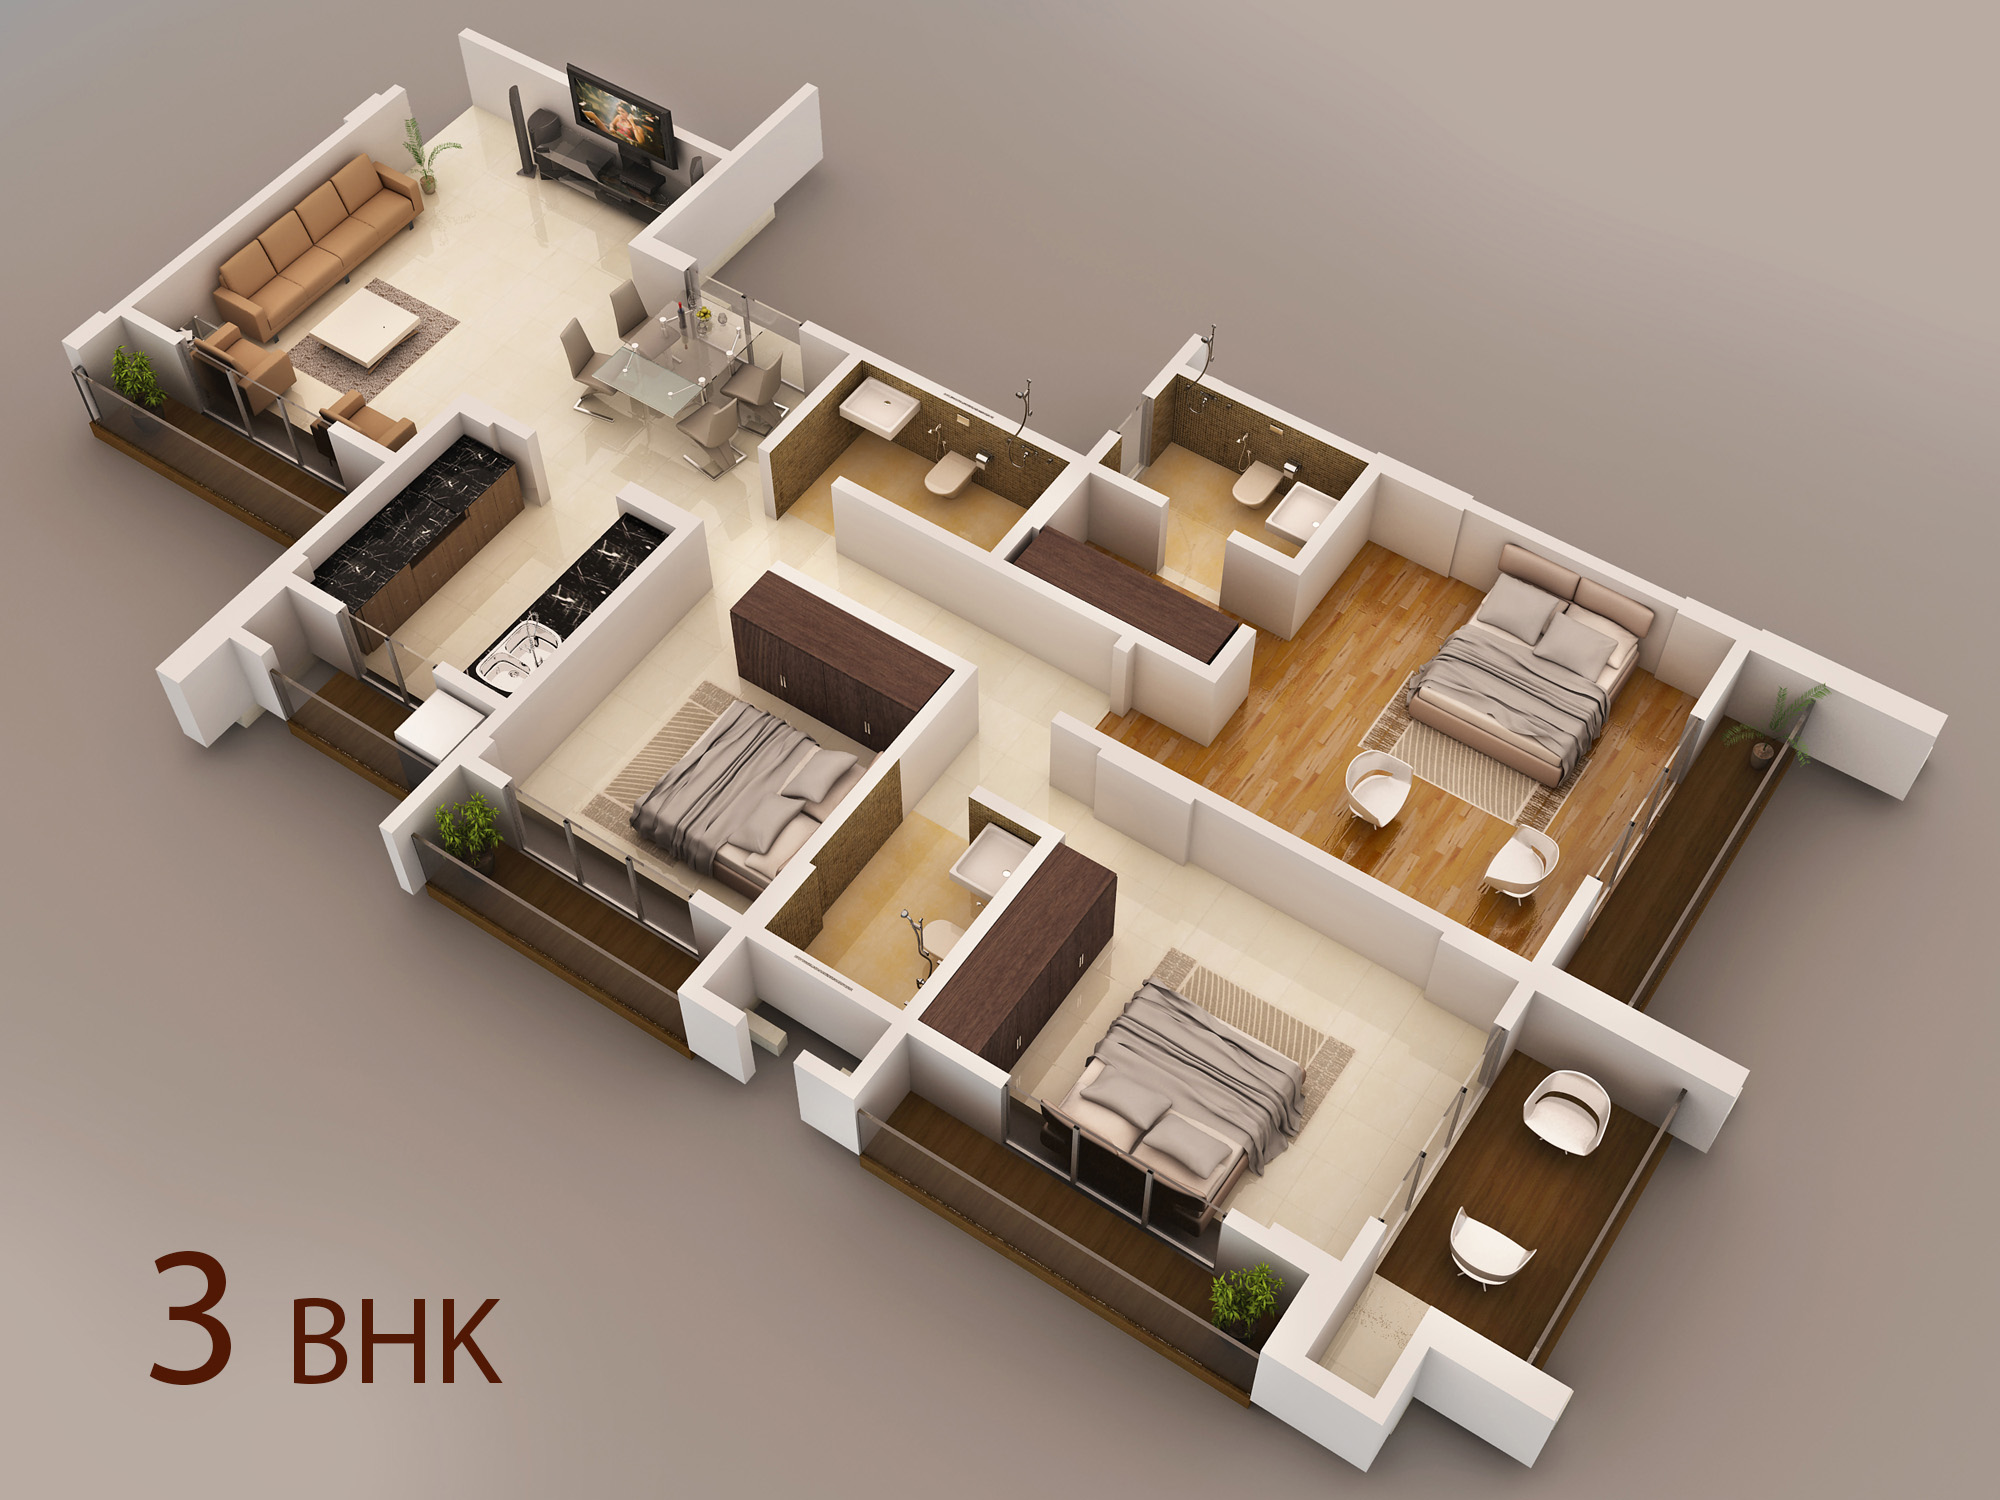 23 Original Home Interior Design For 3bhk Flat Rbserviscom